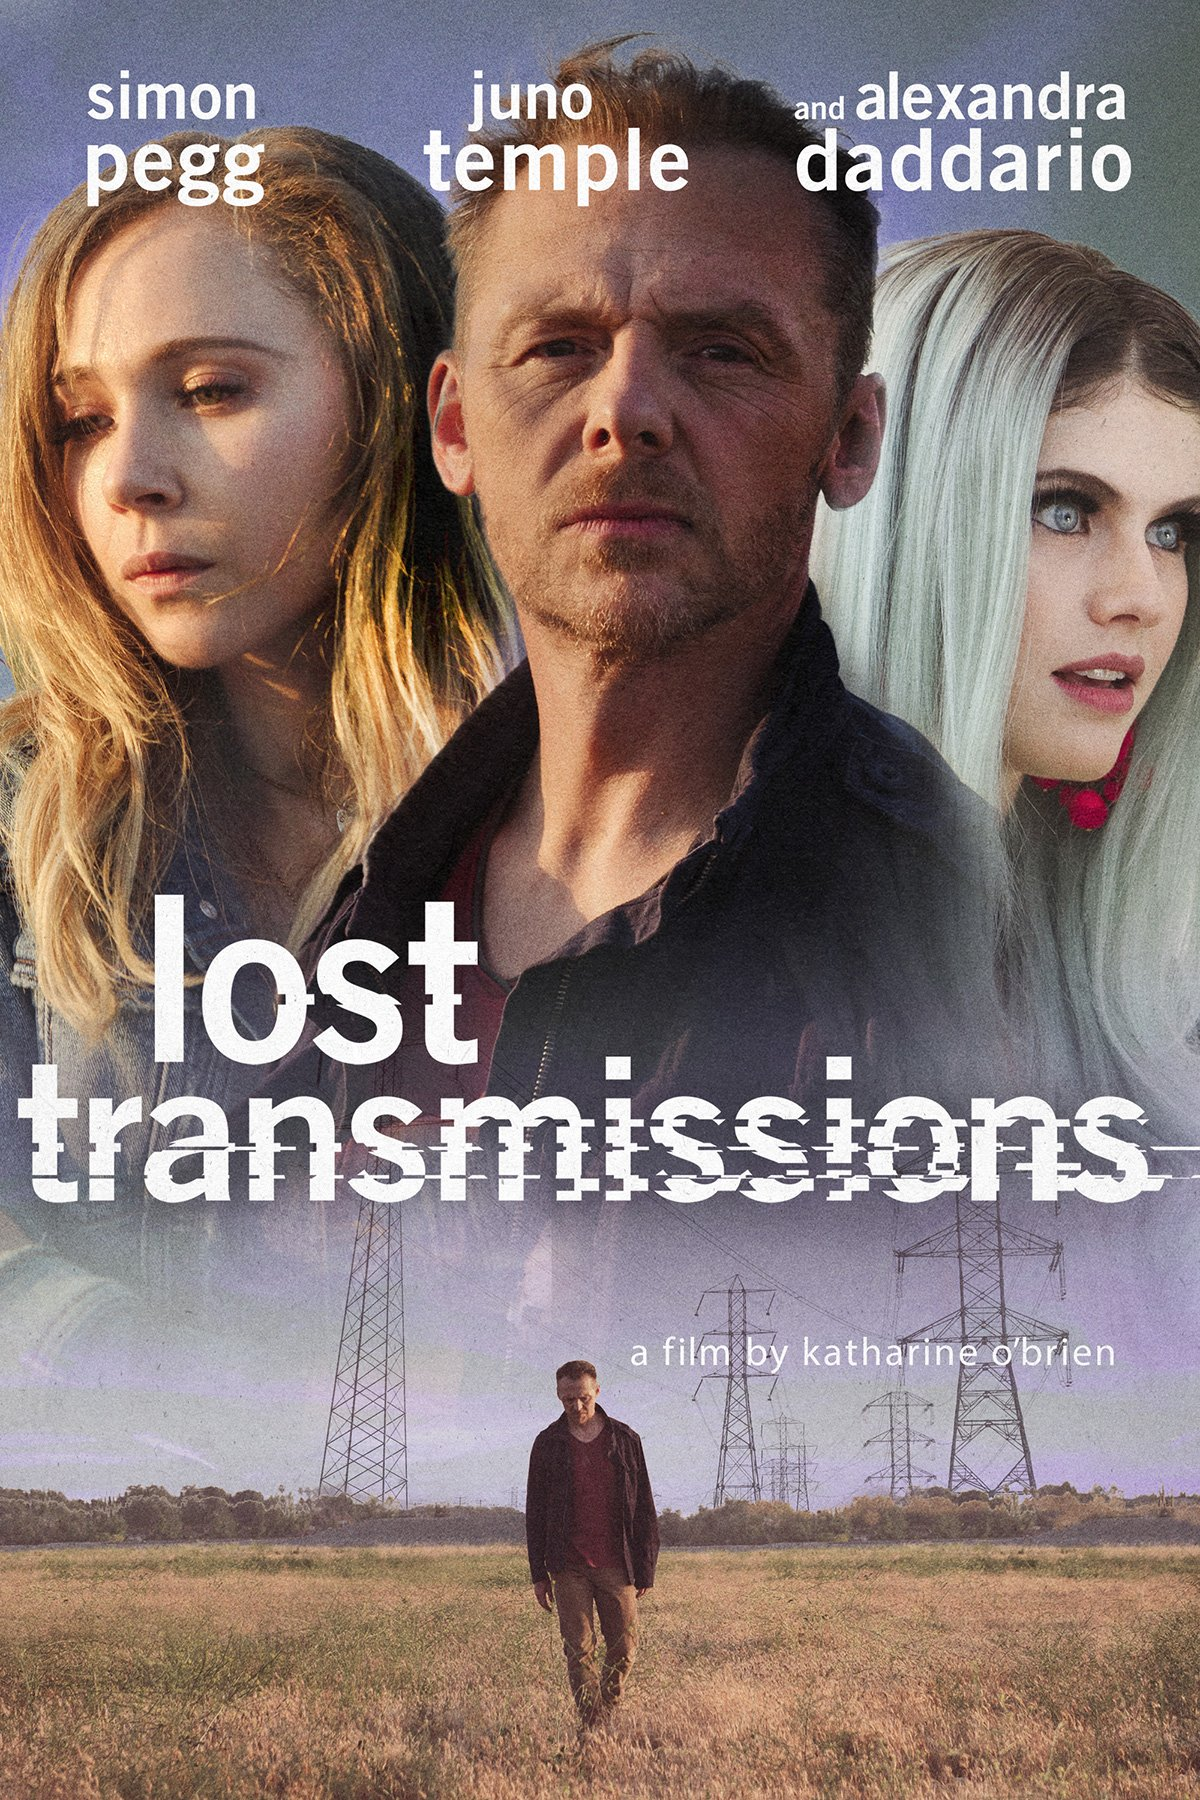 Lost.Transmissions.2019.720p.NFOFIX.BluRay.x264-LATENCY